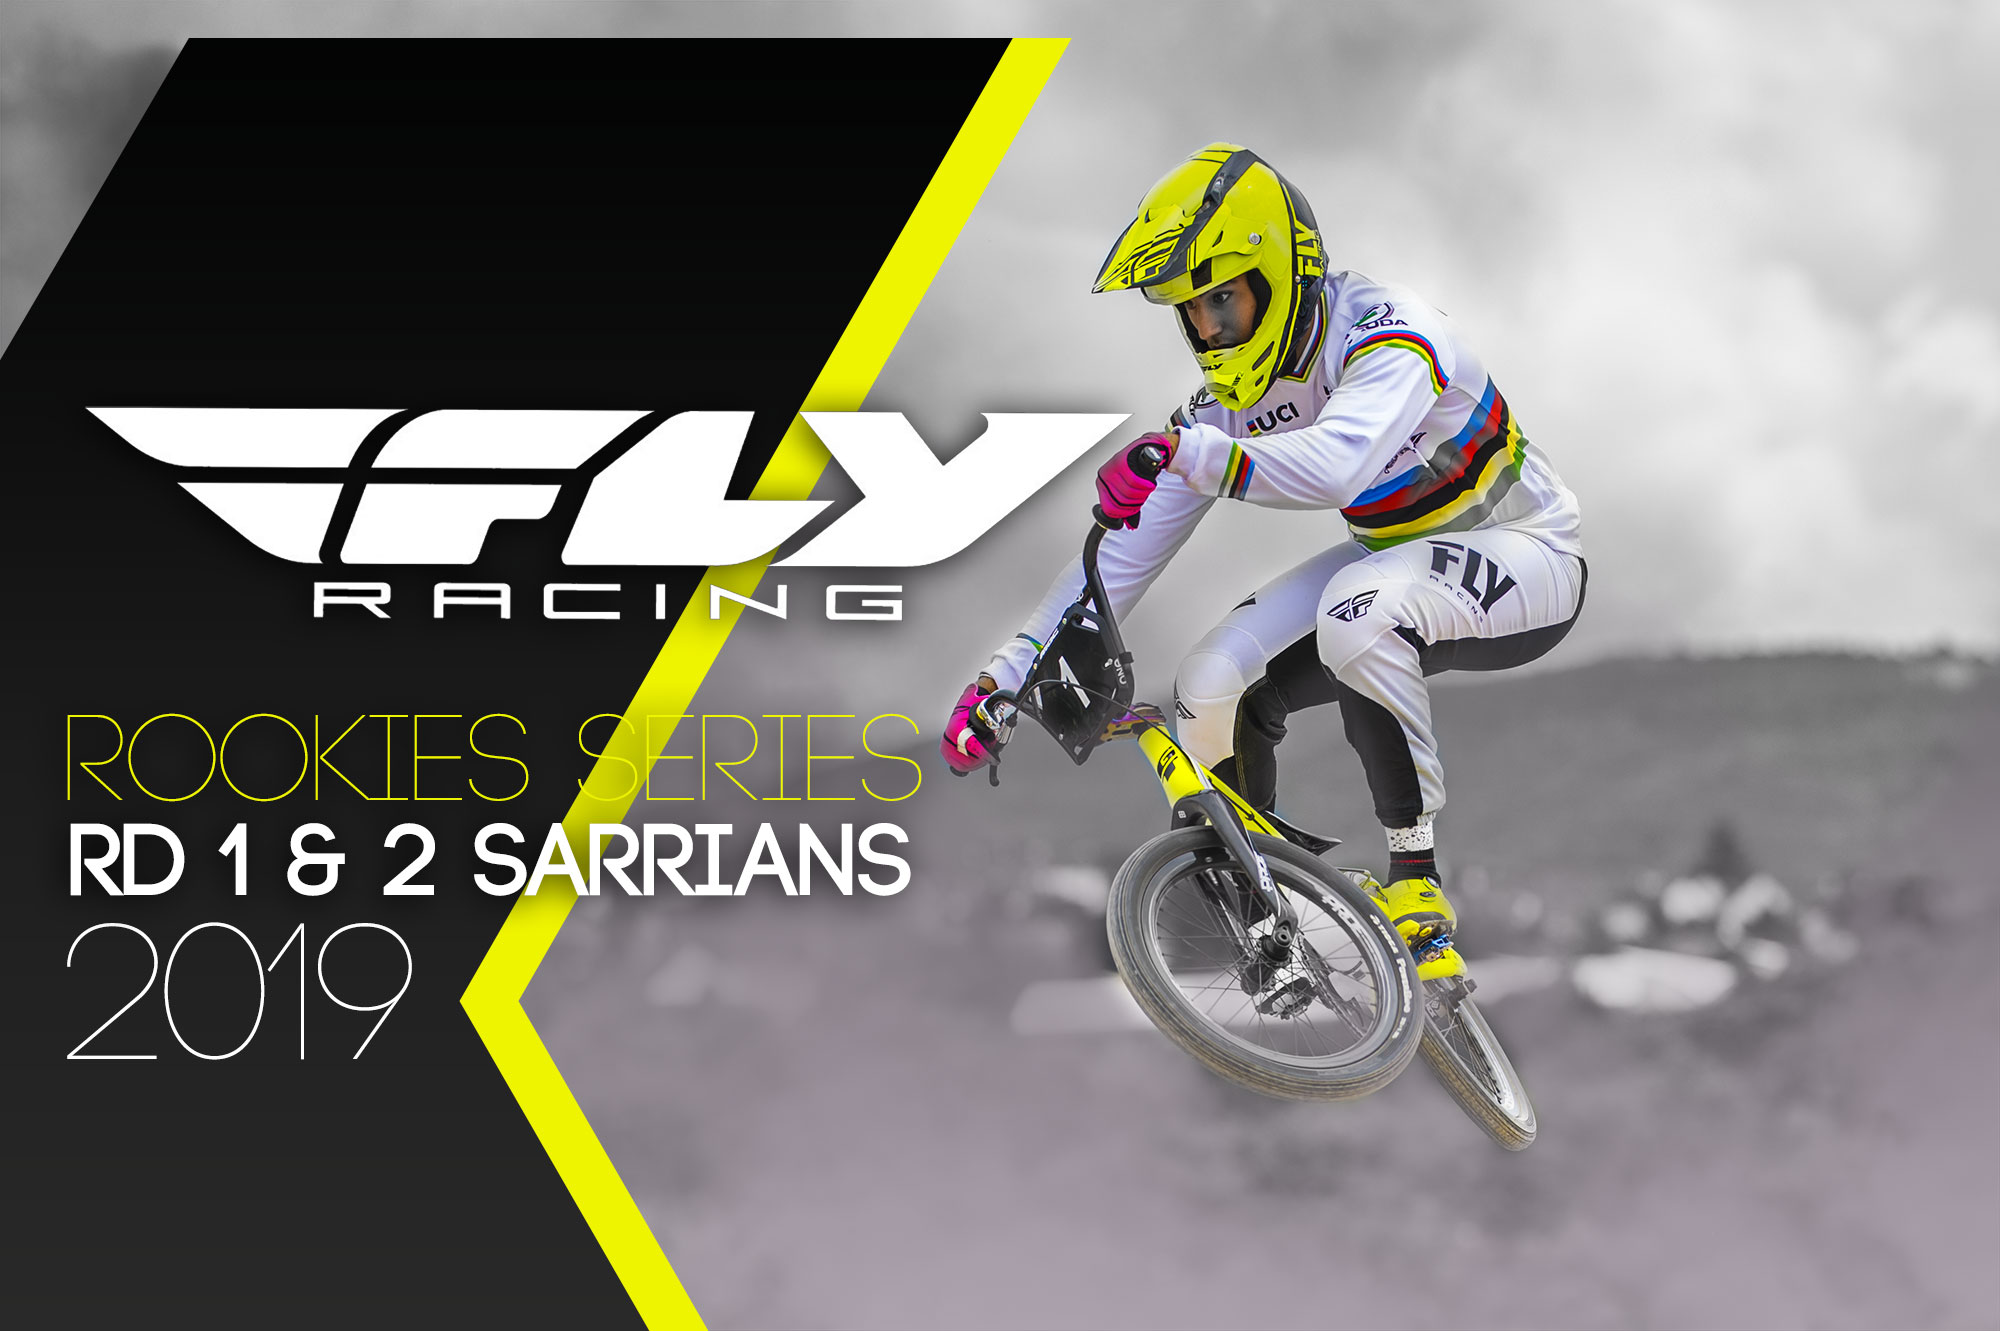 FLY ROOKIES SERIES 2019: début à Sarrians